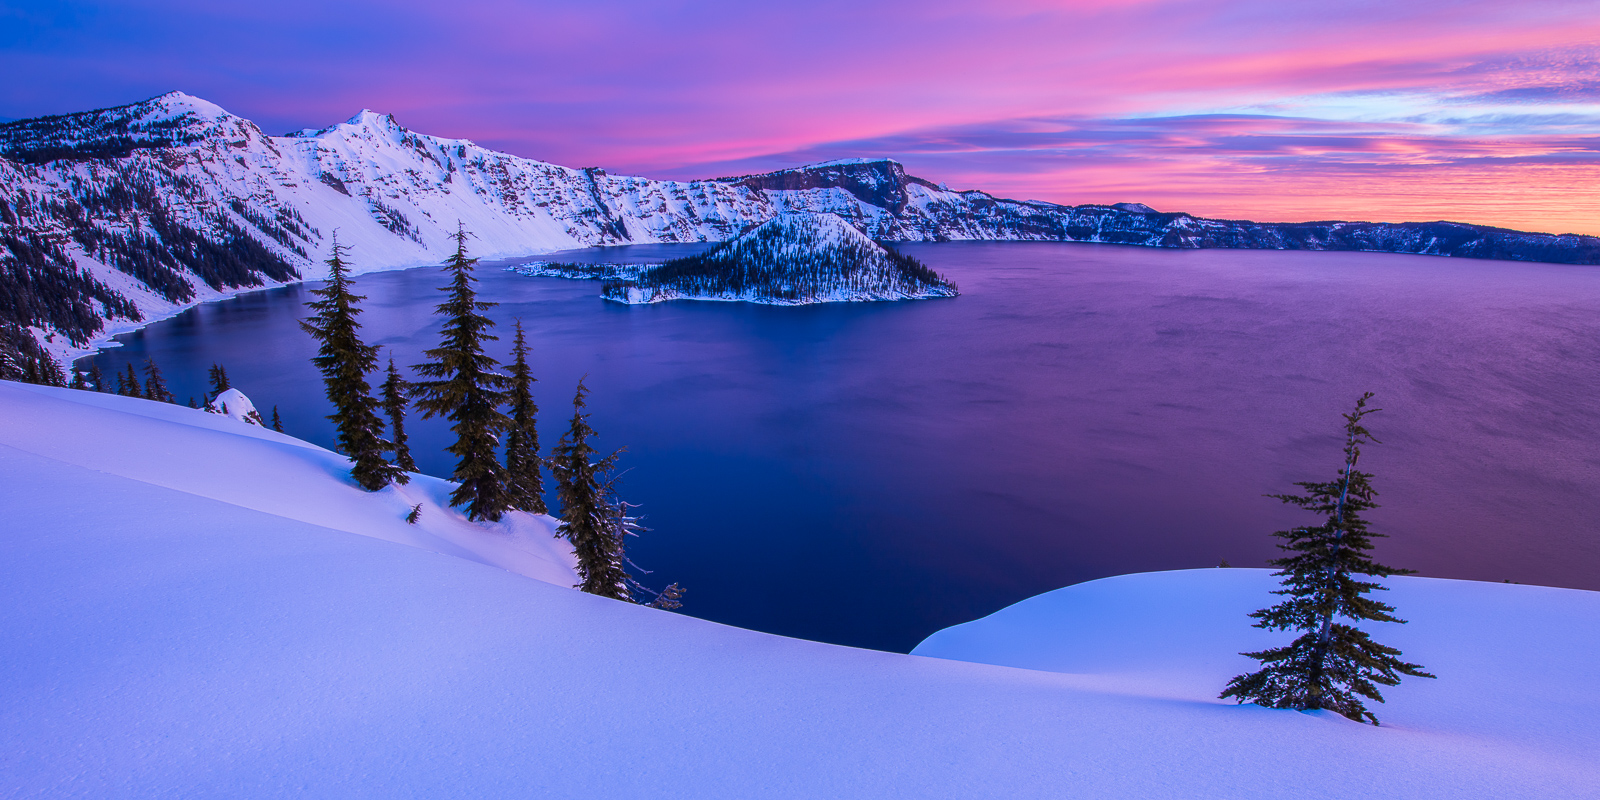 Crater Lake Blaze, Crater Lake National Park, winter, wilderness, photo